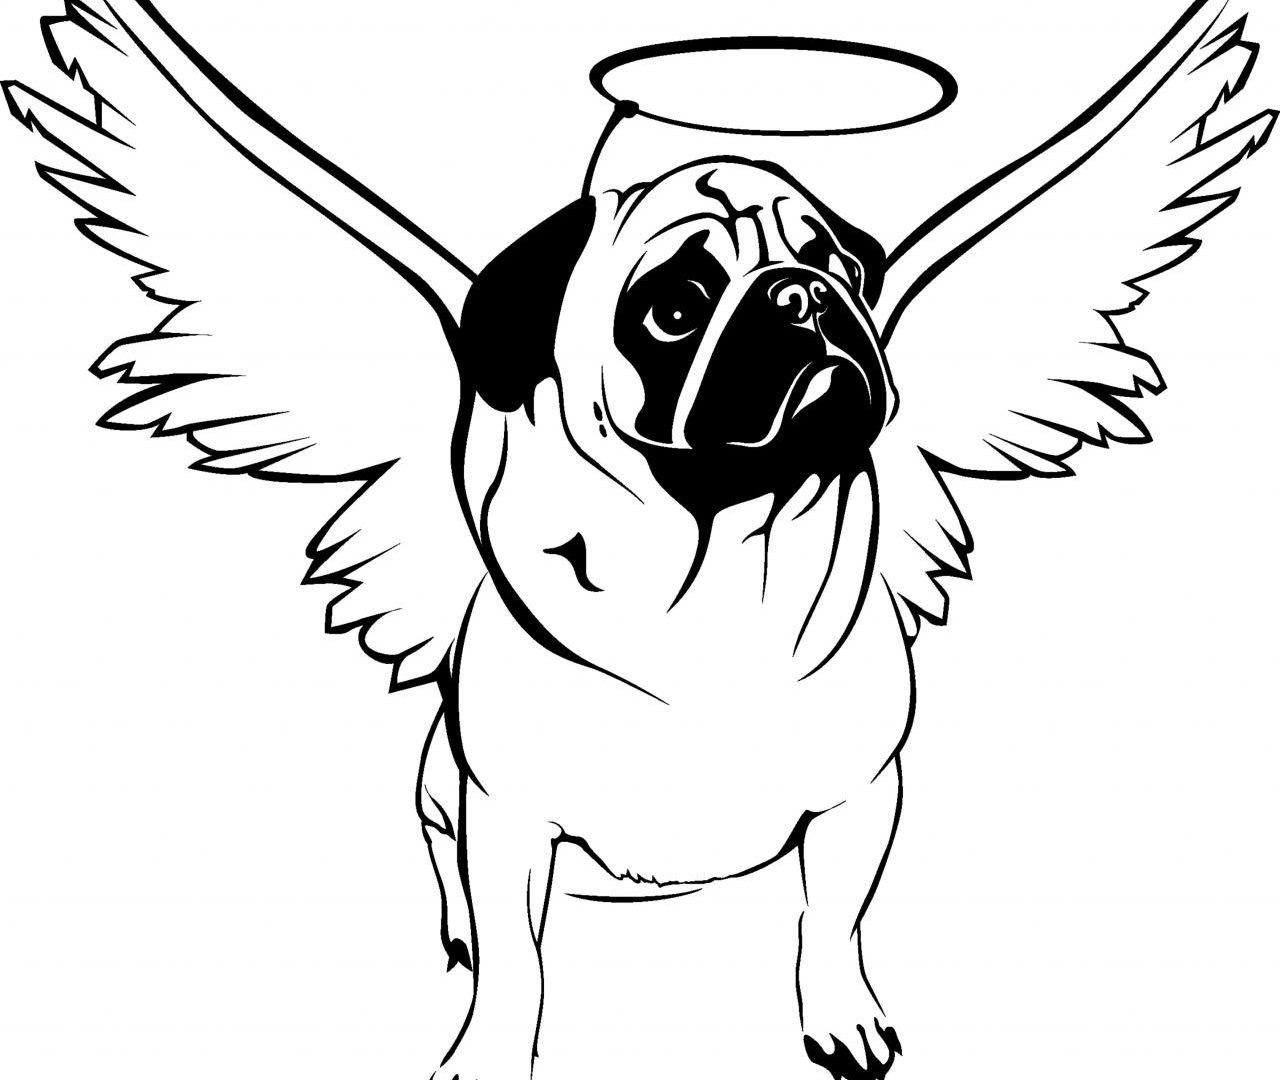 pug puppy coloring pages adult coloring pages pug at getdrawings free download pages puppy coloring pug